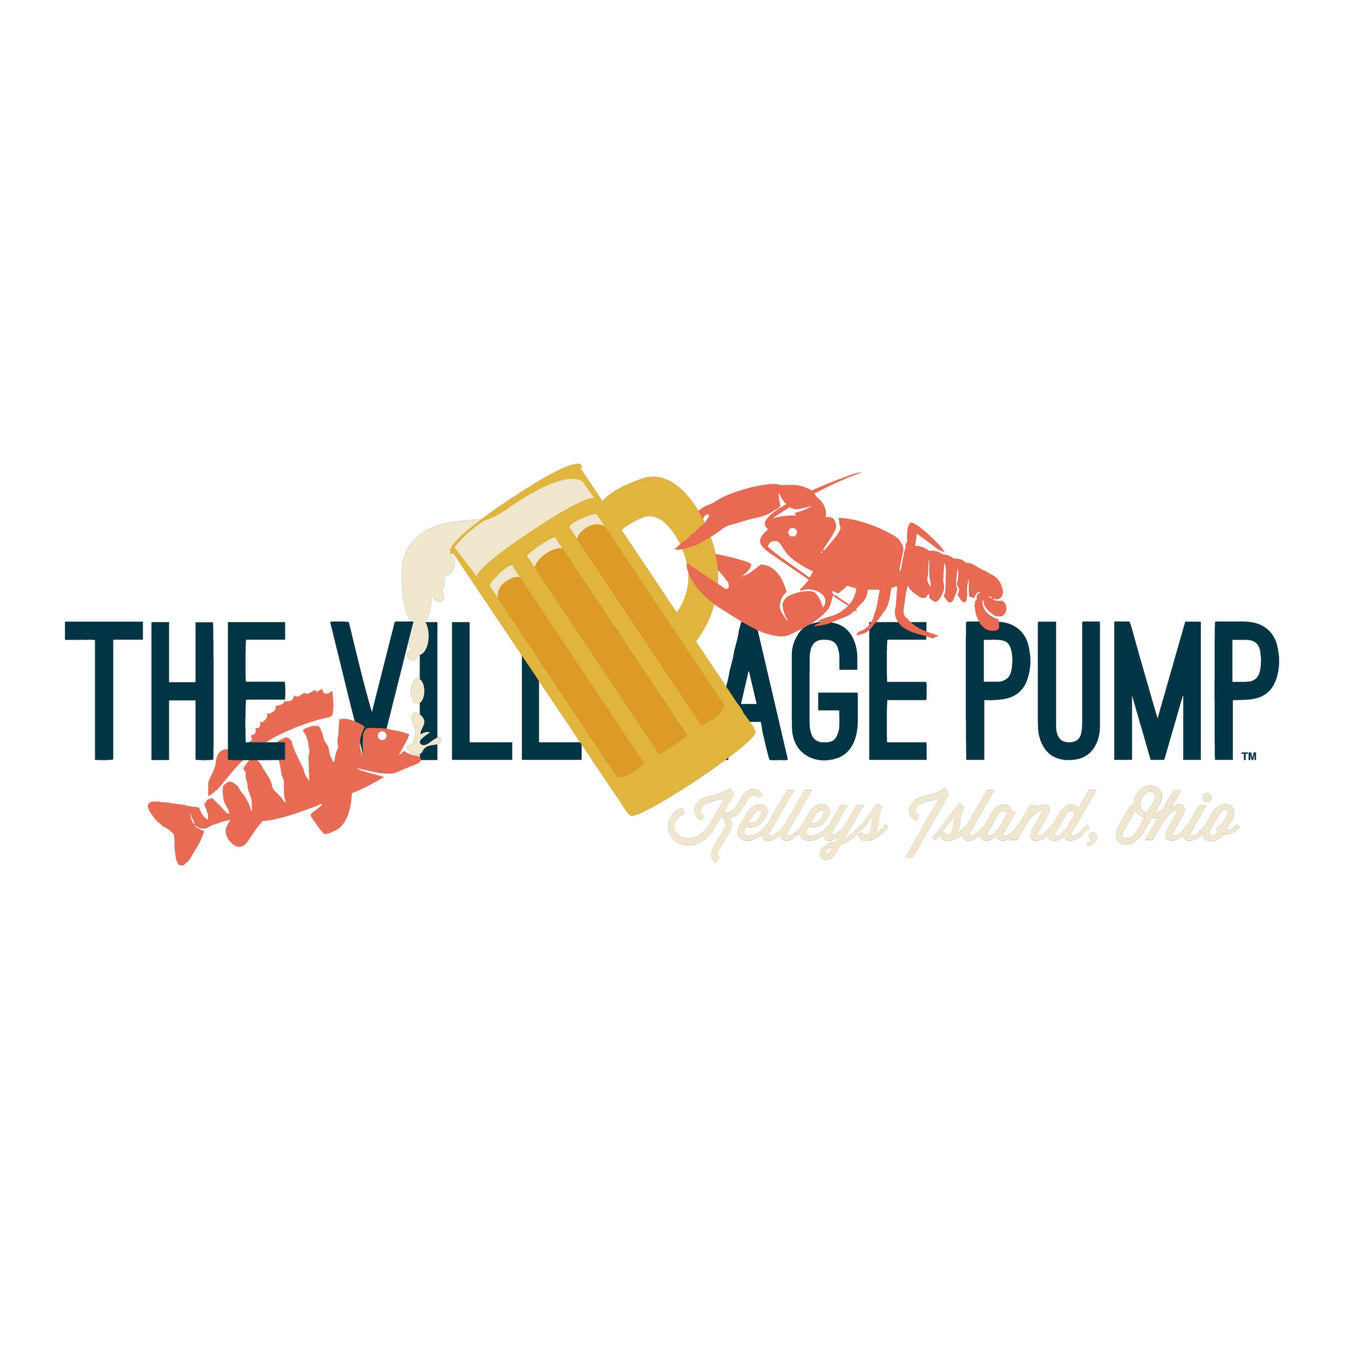 Support The Village Pump